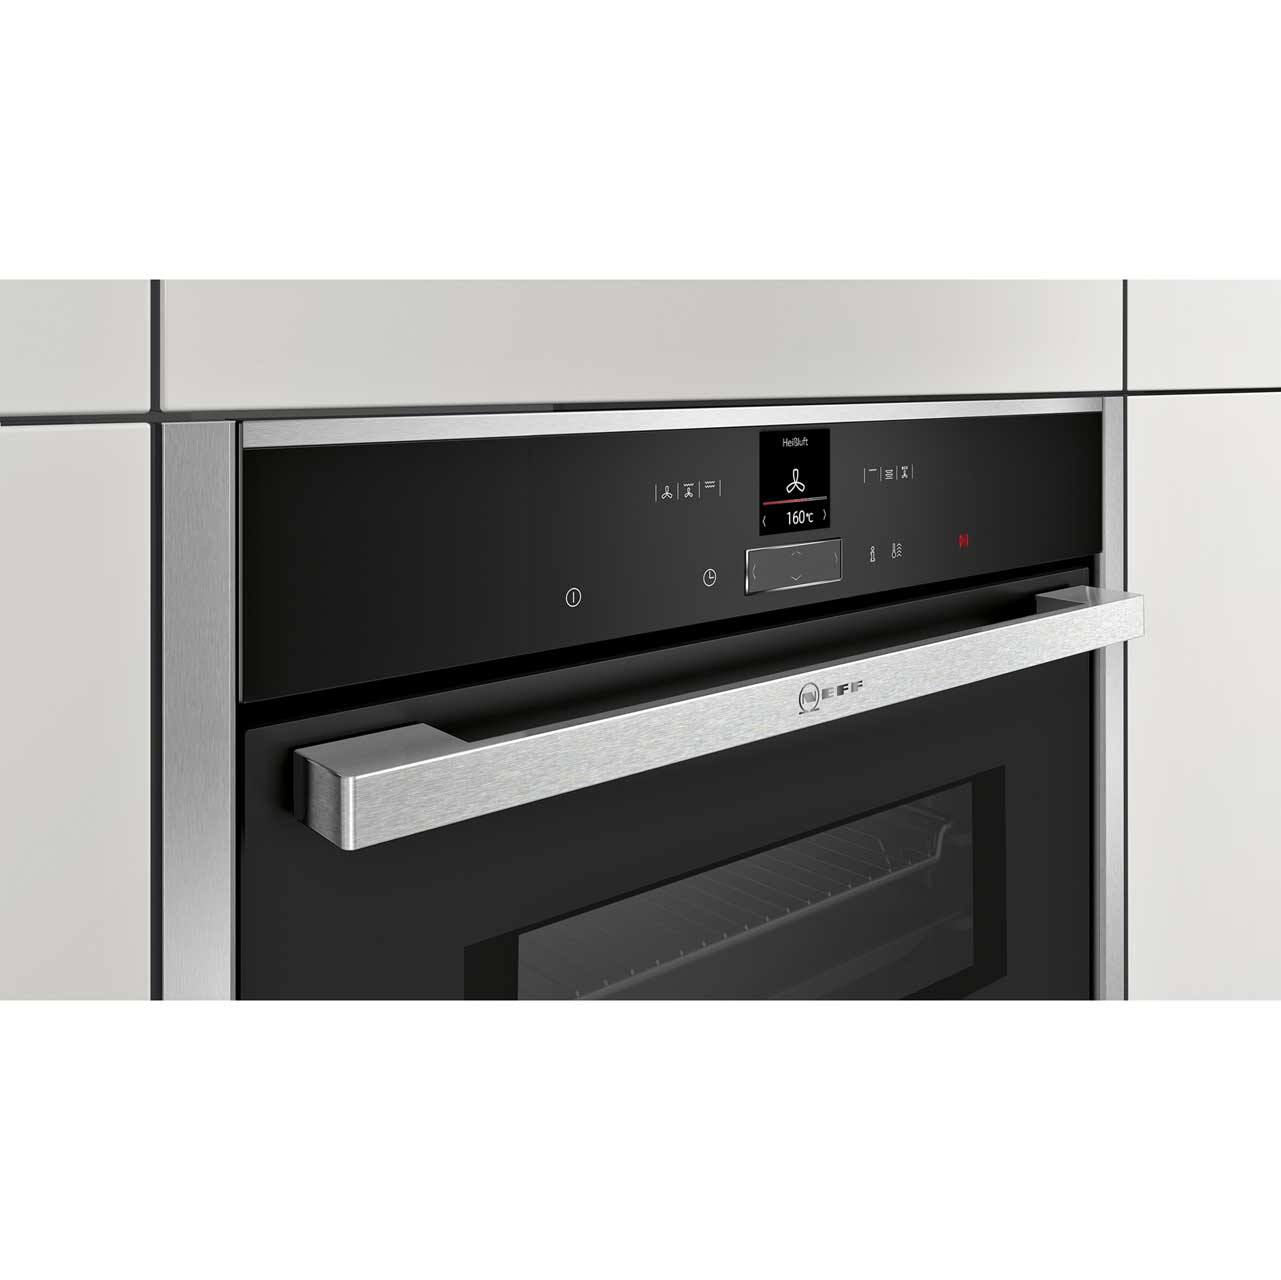 Neff C17mr02n0b N70 Built In 60cm Electric Single Oven